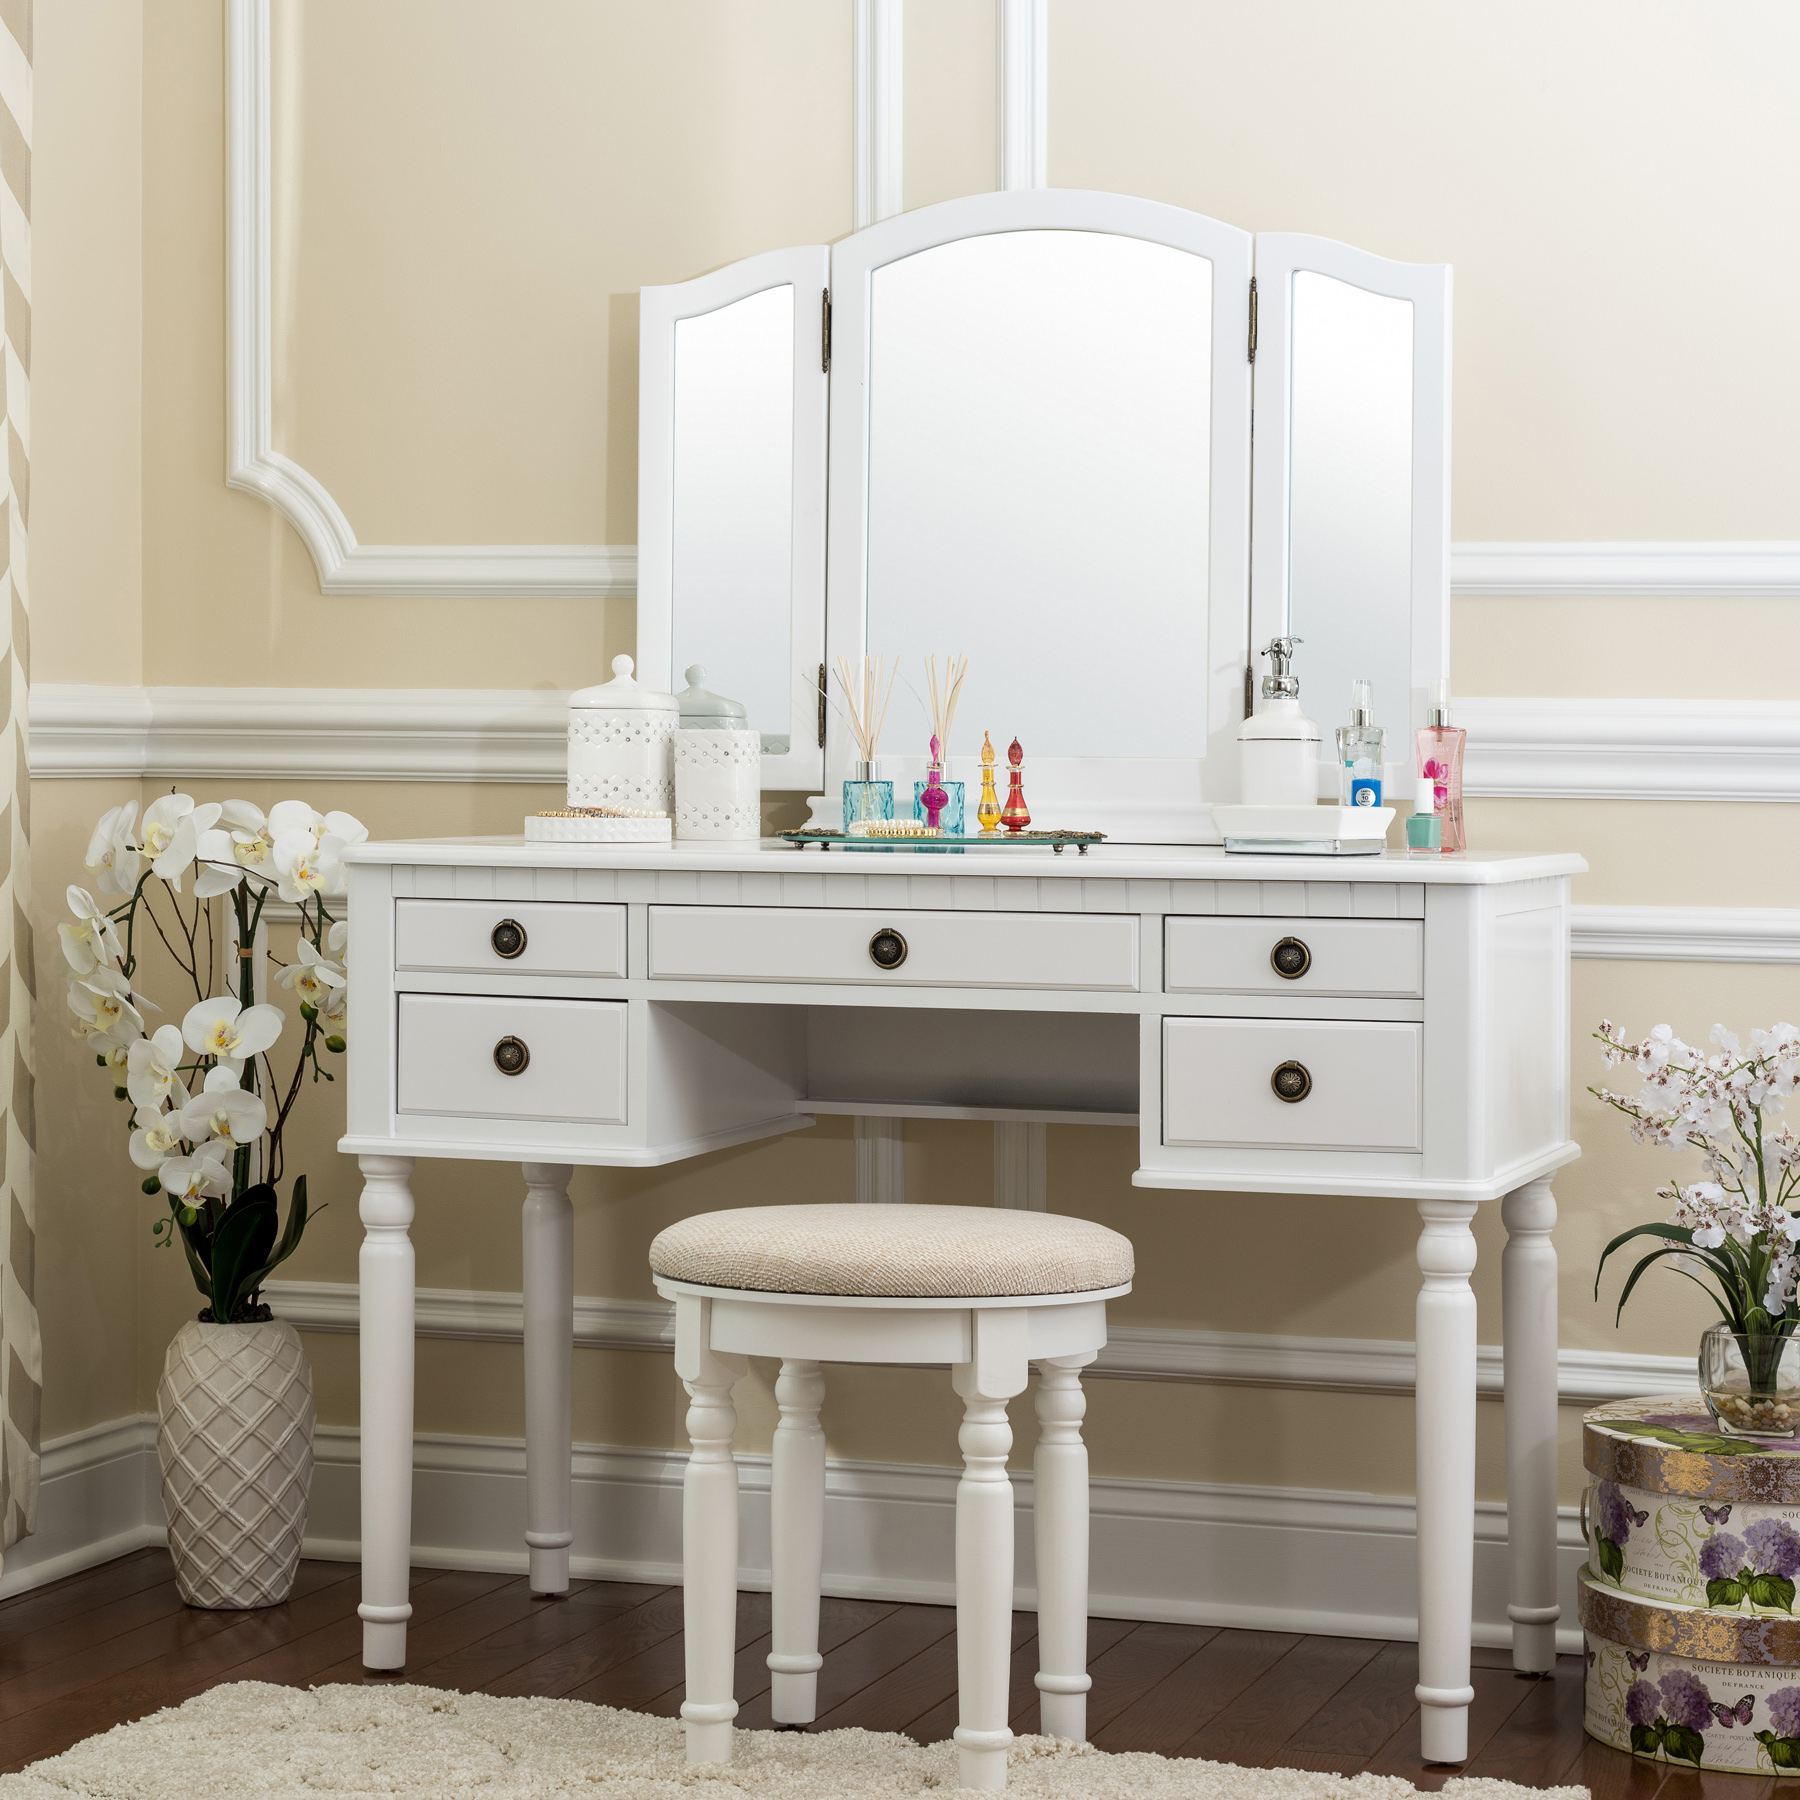 Fineboard Dressing Set with Stool Beauty Station Makeup Table Three Mirror Vanity Set 5 Organization & Vanities Bedroom Vanities Makeup Vanities - Walmart.com